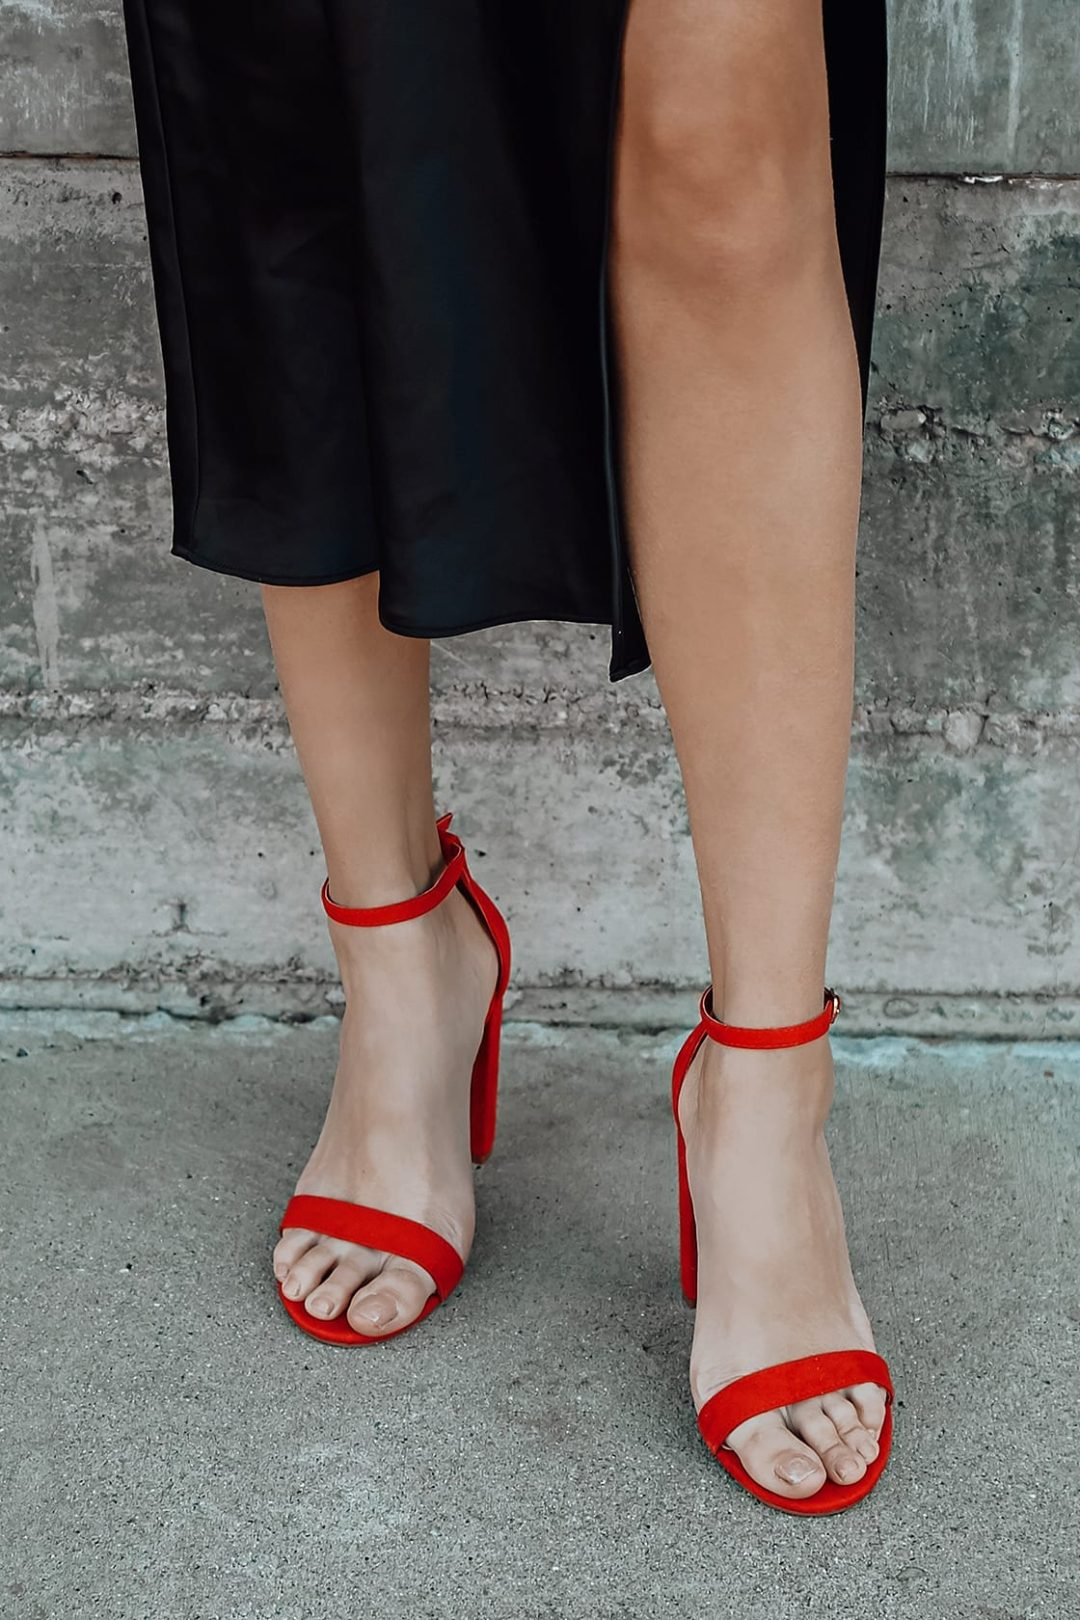 Best Shoe Colors To Wear With A Red Dress: Red strappy heels